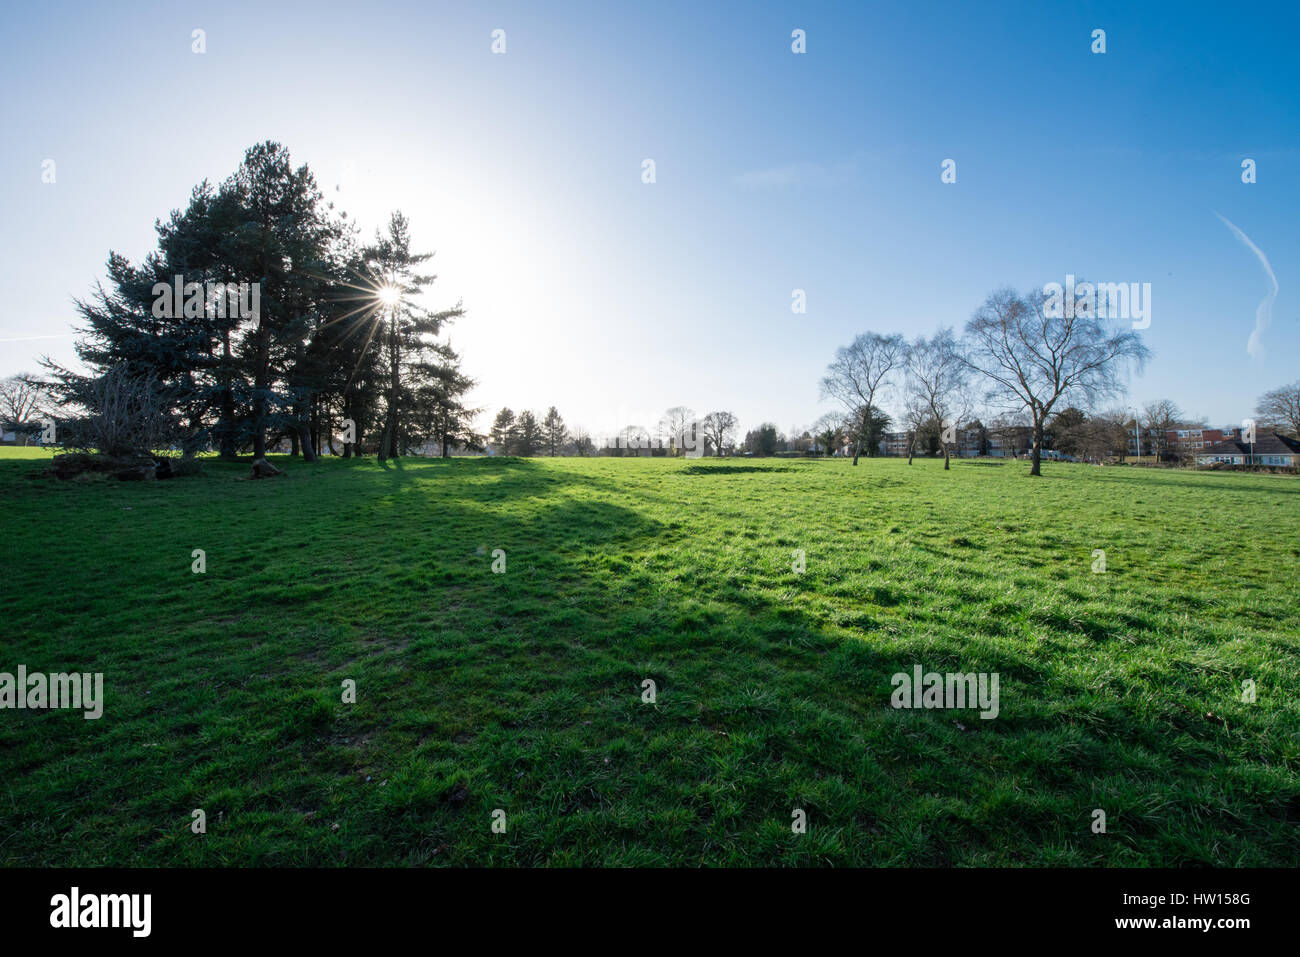 Spring afternoon sunshine and blue skies over urban public parkland at Bantock House near Wolverhampton - Stock Image